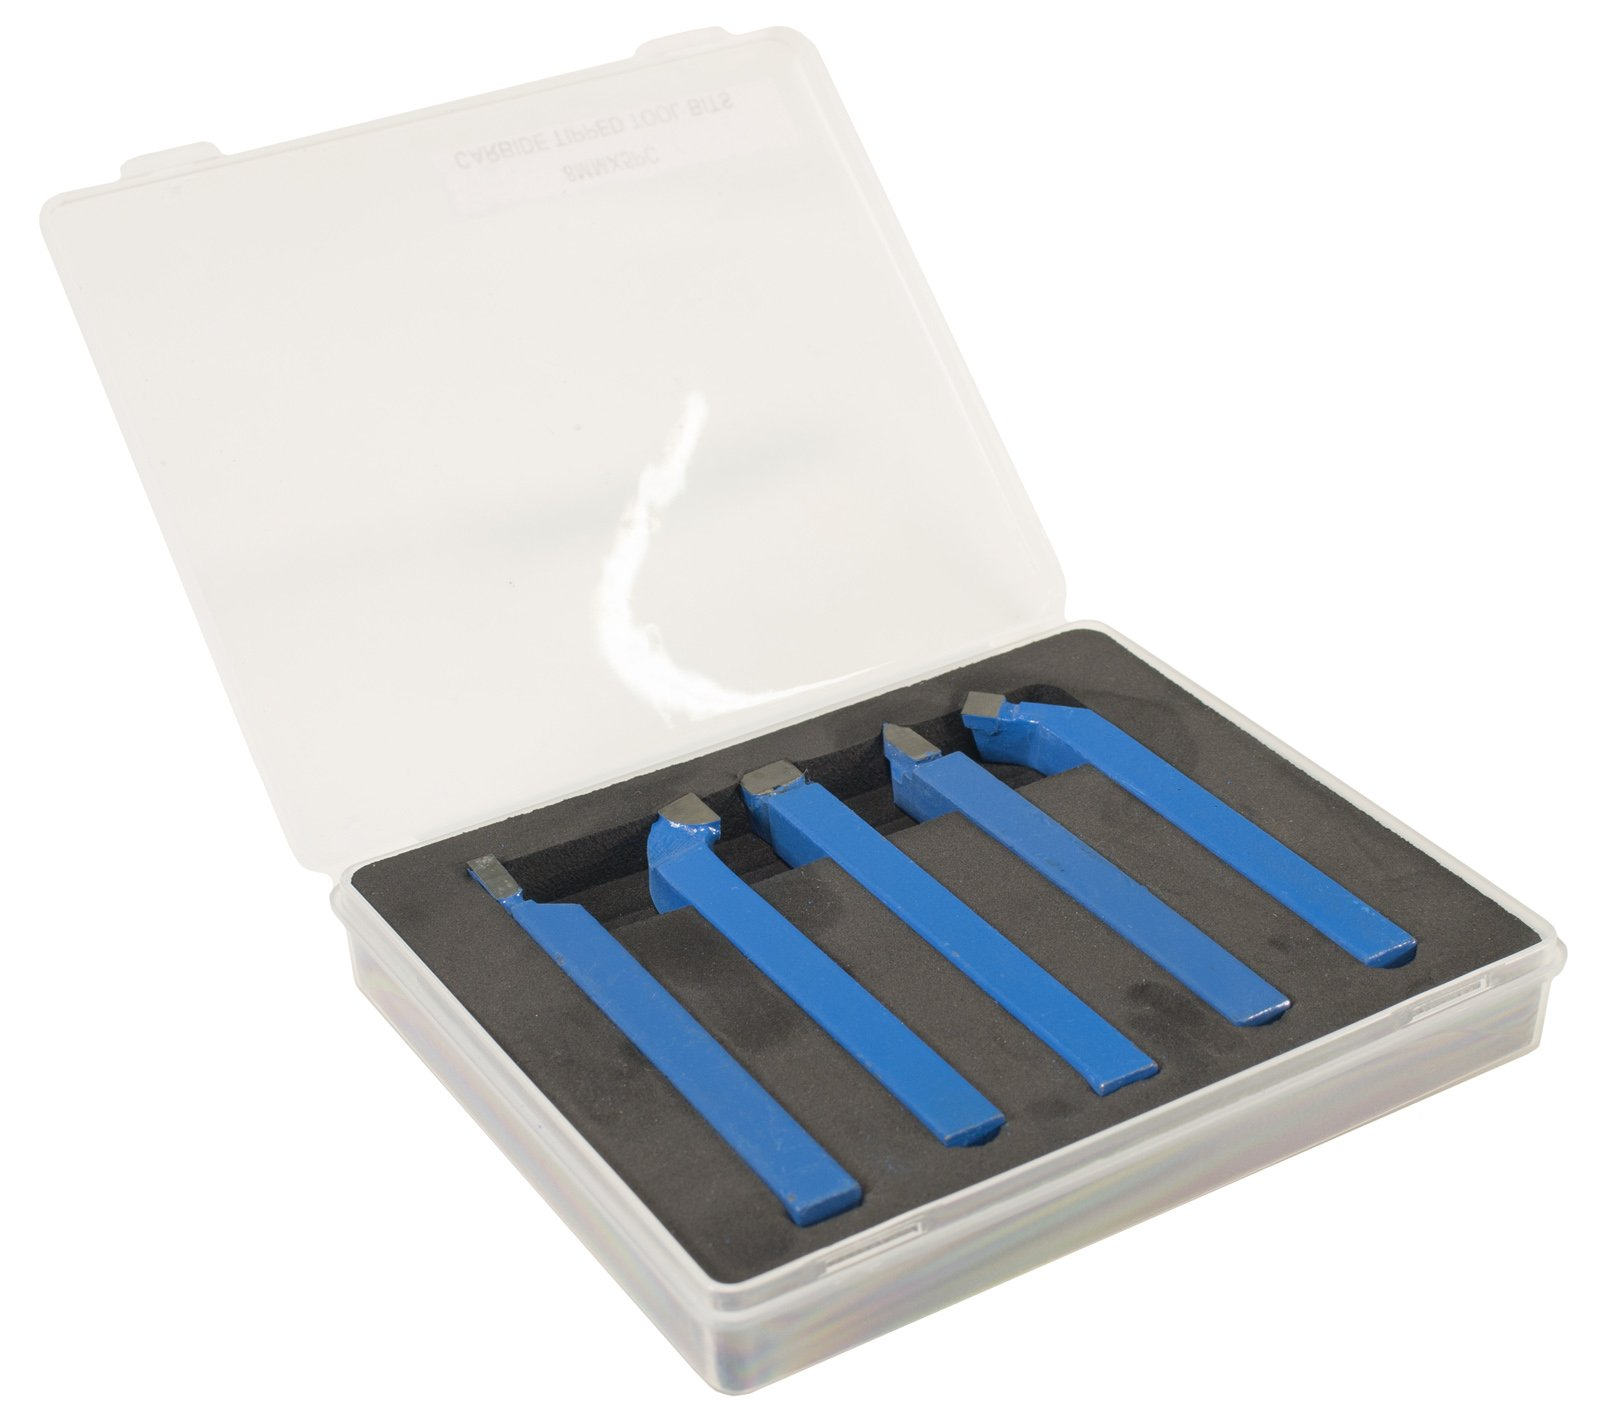 Erie Tools 5 Piece Cutting Set 5/16'' Tungsten Carbide Tips for Mini Metal Lathe by Erie Tools